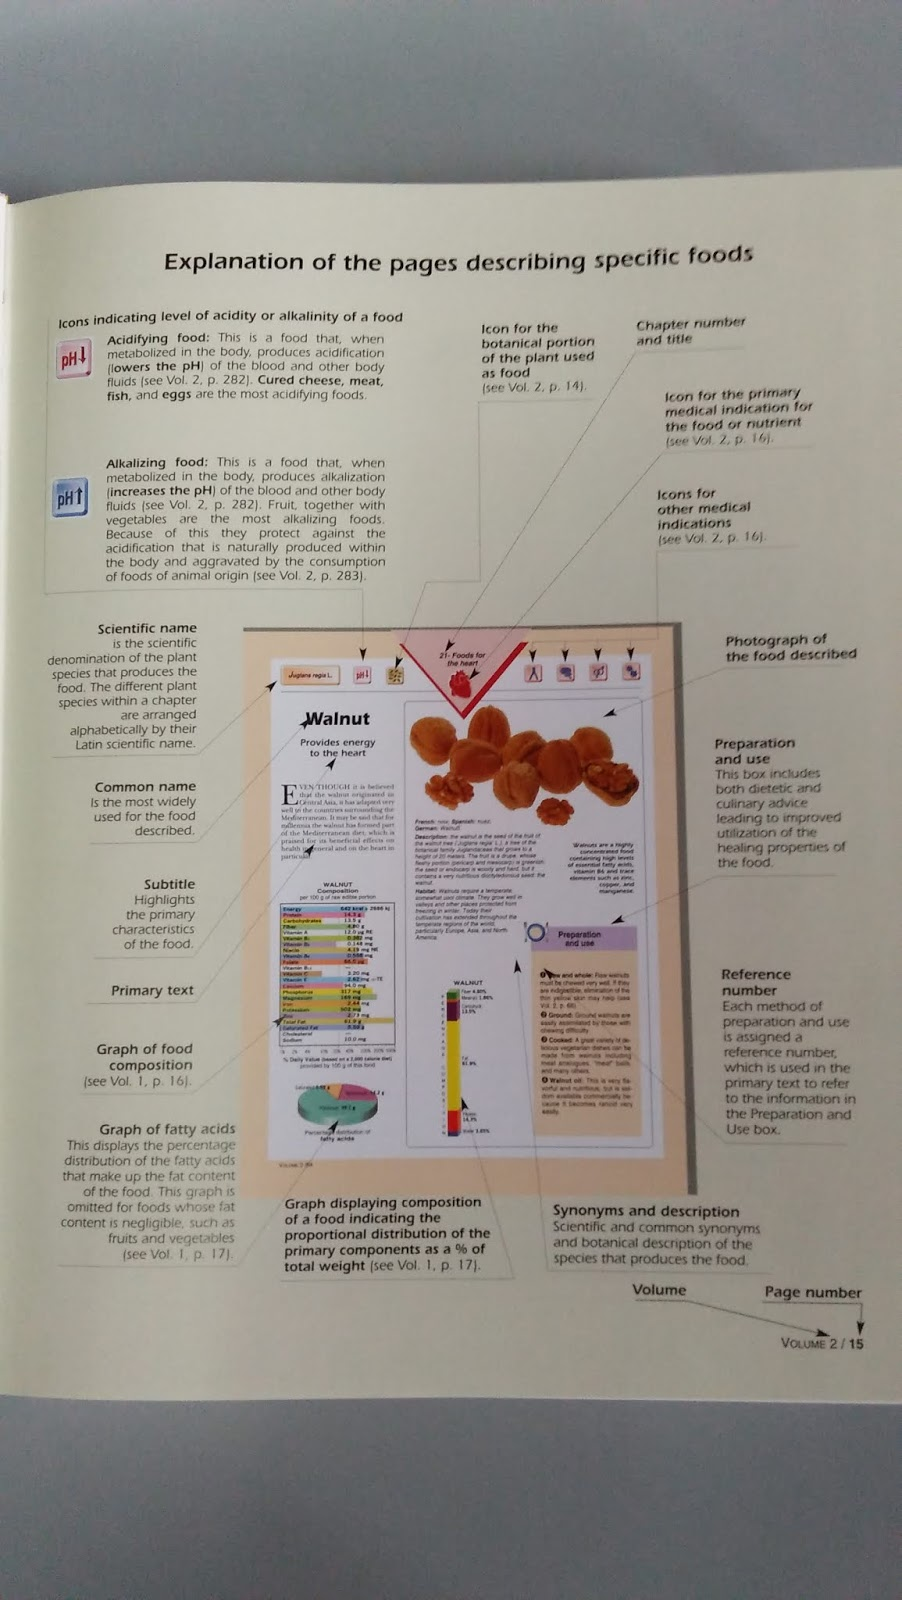 medium resolution of explanation of pages tables and boxes in this encyclopedia of foods and thier healing power explanation of the menu pages